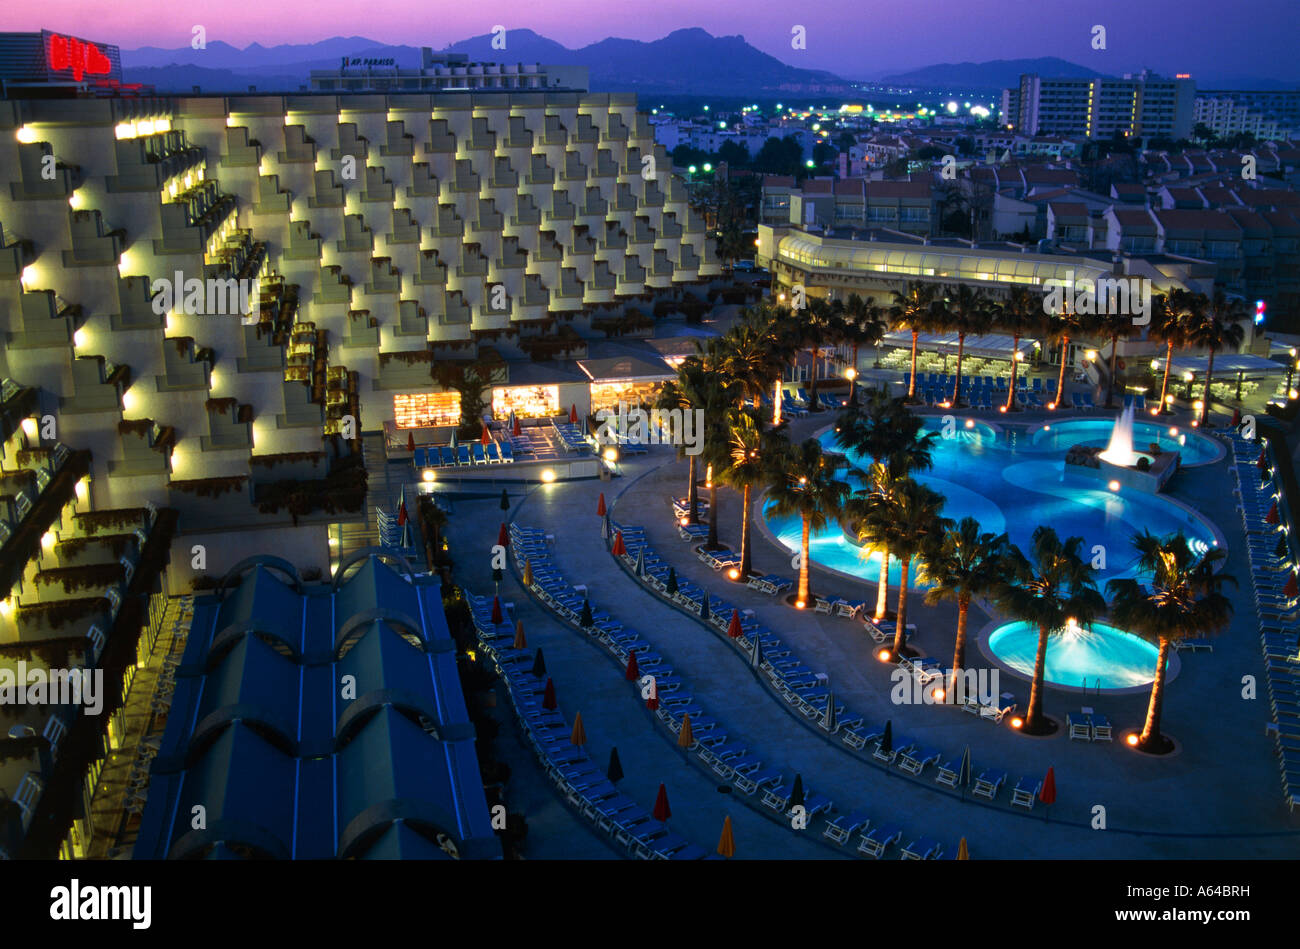 hotel complex of royal mediterraneo at evening resort of sa coma island of mallorca balearic islands spain editorial - Stock Image